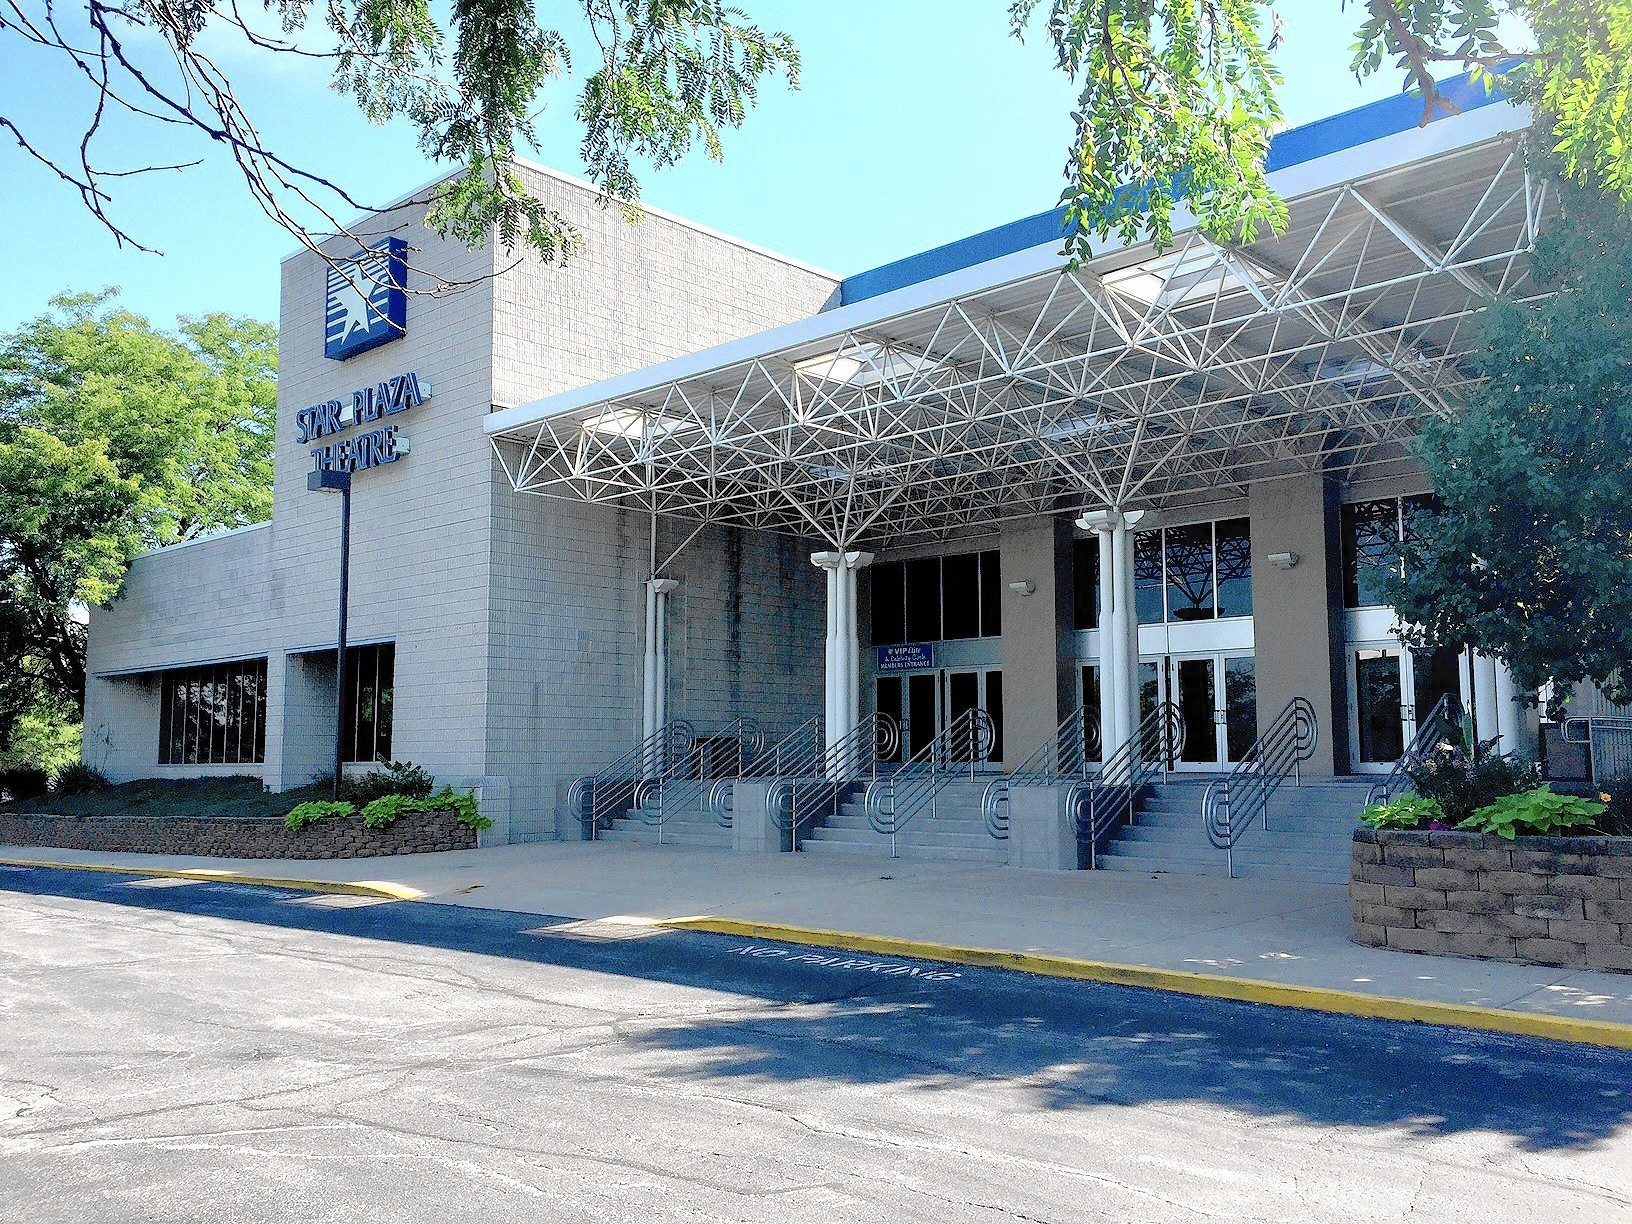 Theaters demise recalls fates of Southland entertainment venues